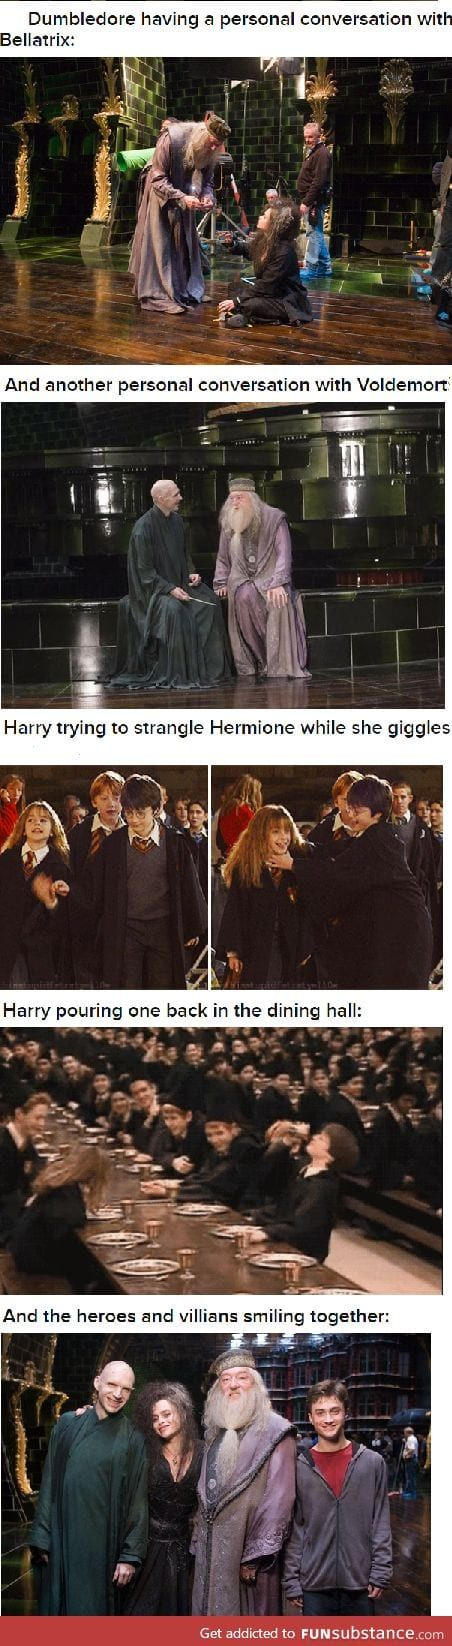 Things you won't see on Harry Potter part 1